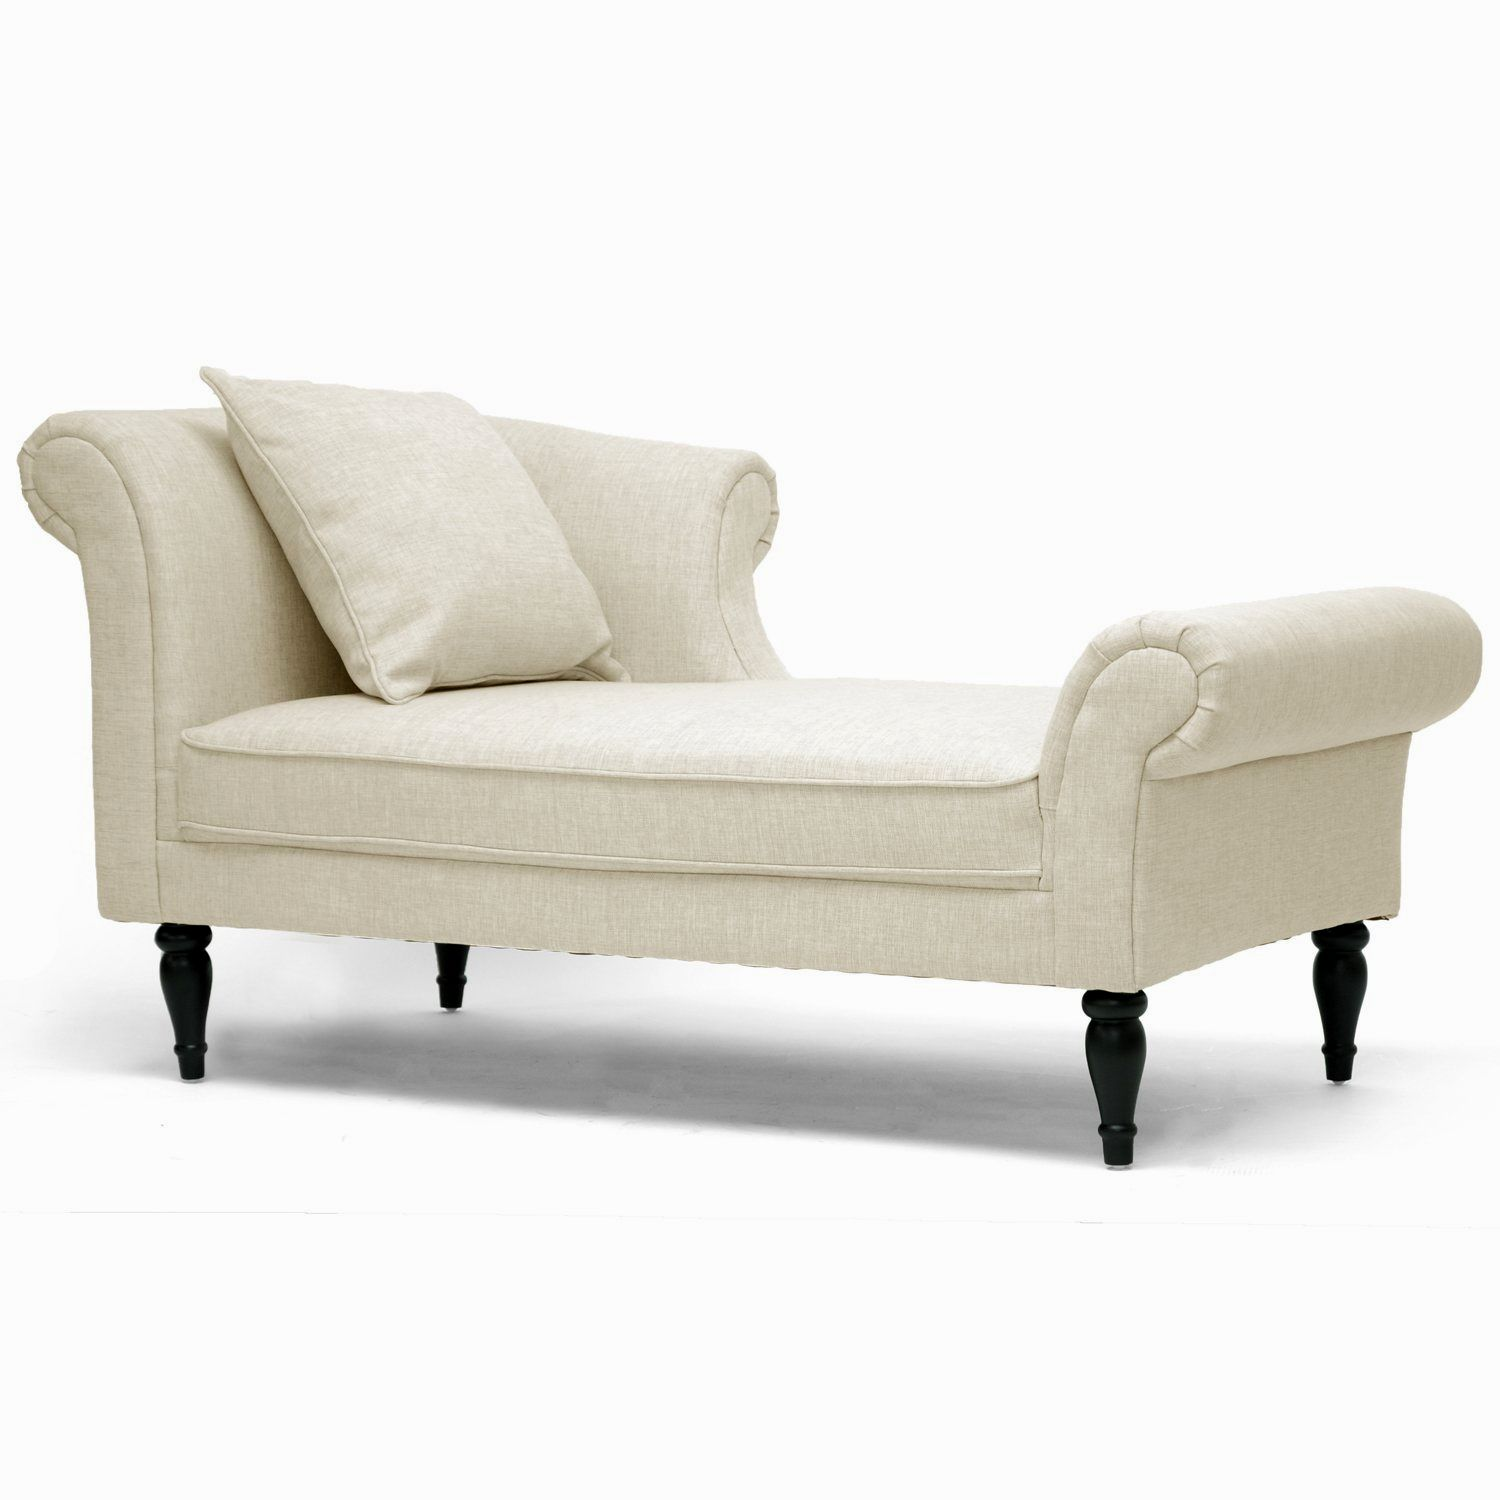 lovely small sofa with chaise image-Contemporary Small sofa with Chaise Picture